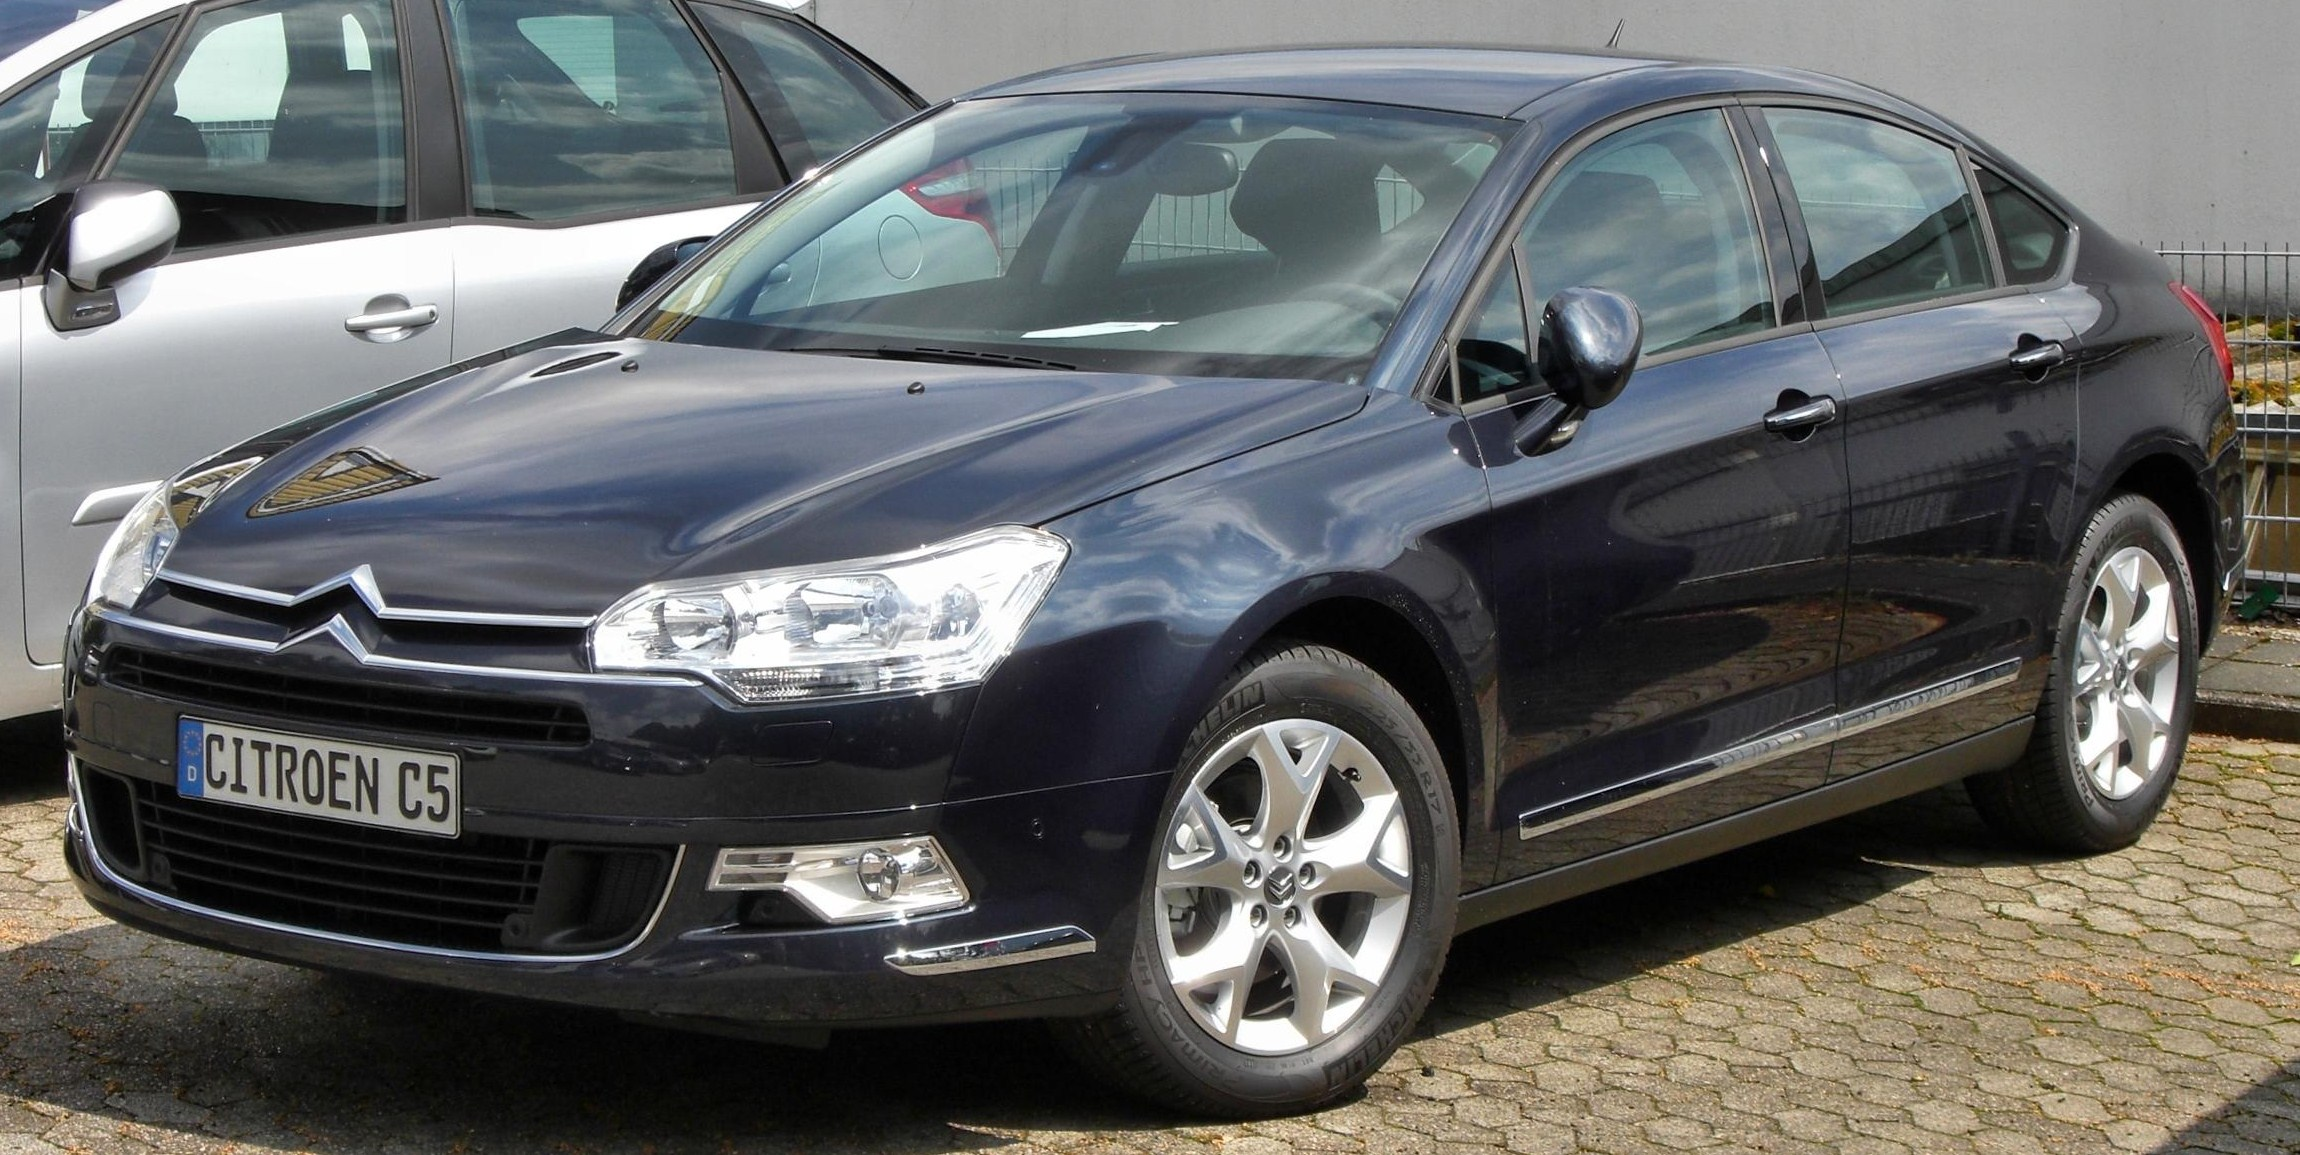 Citroen C5 Beats BMW 528i As Israel's New State Car | The Truth ...